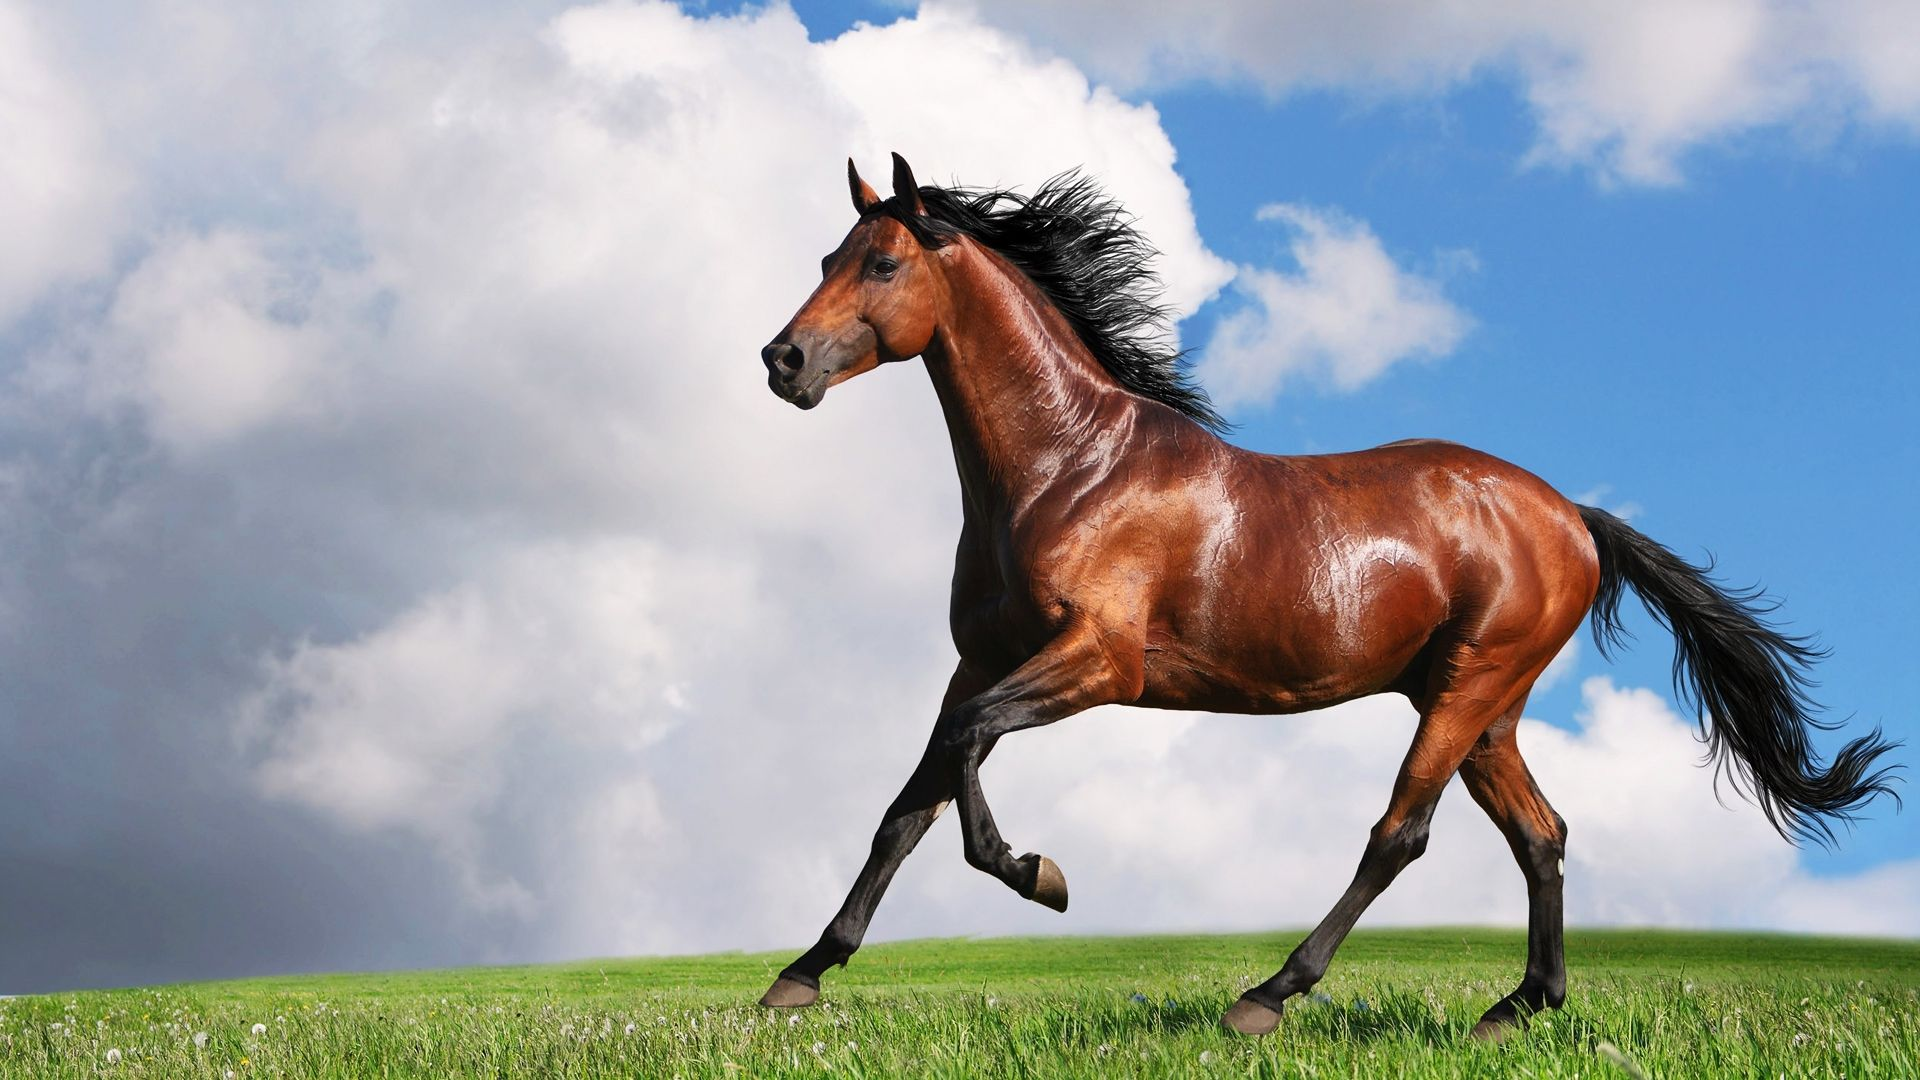 Download Running Beautiful Horse Hd Wallpaper 1080p Jh Horses